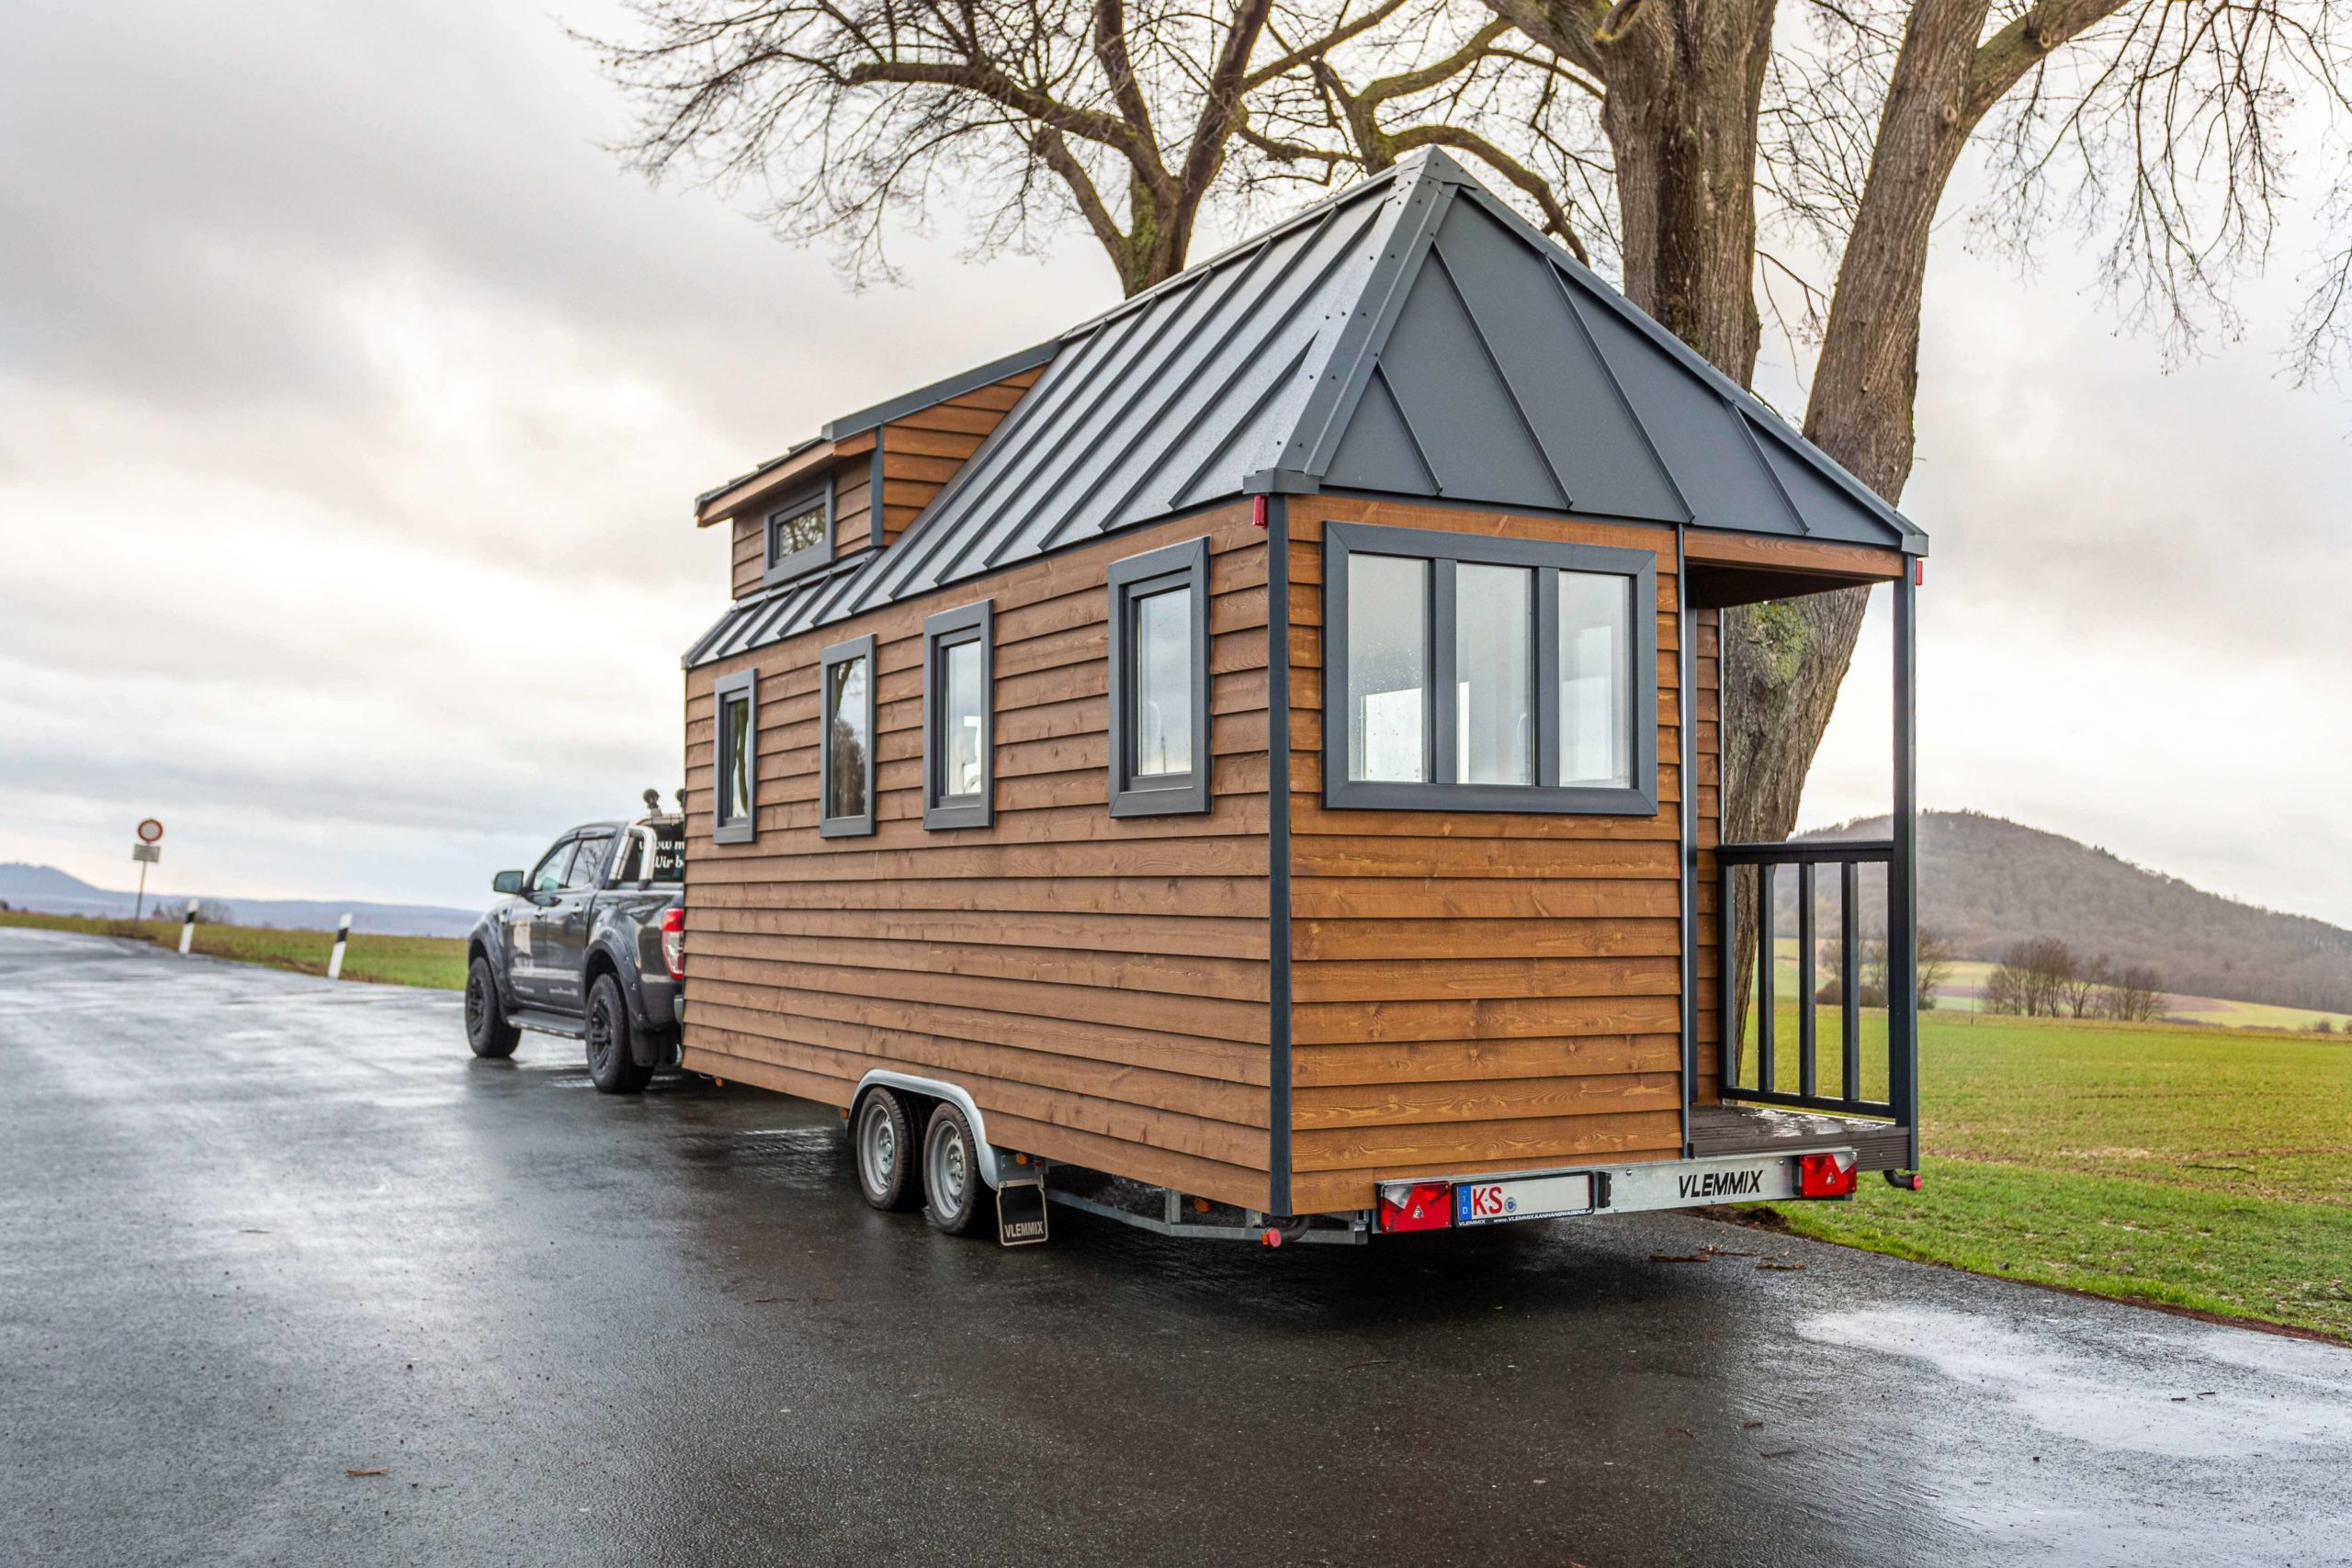 mobiles-tiny-house-frankreich-vital-camp-gmbh-03